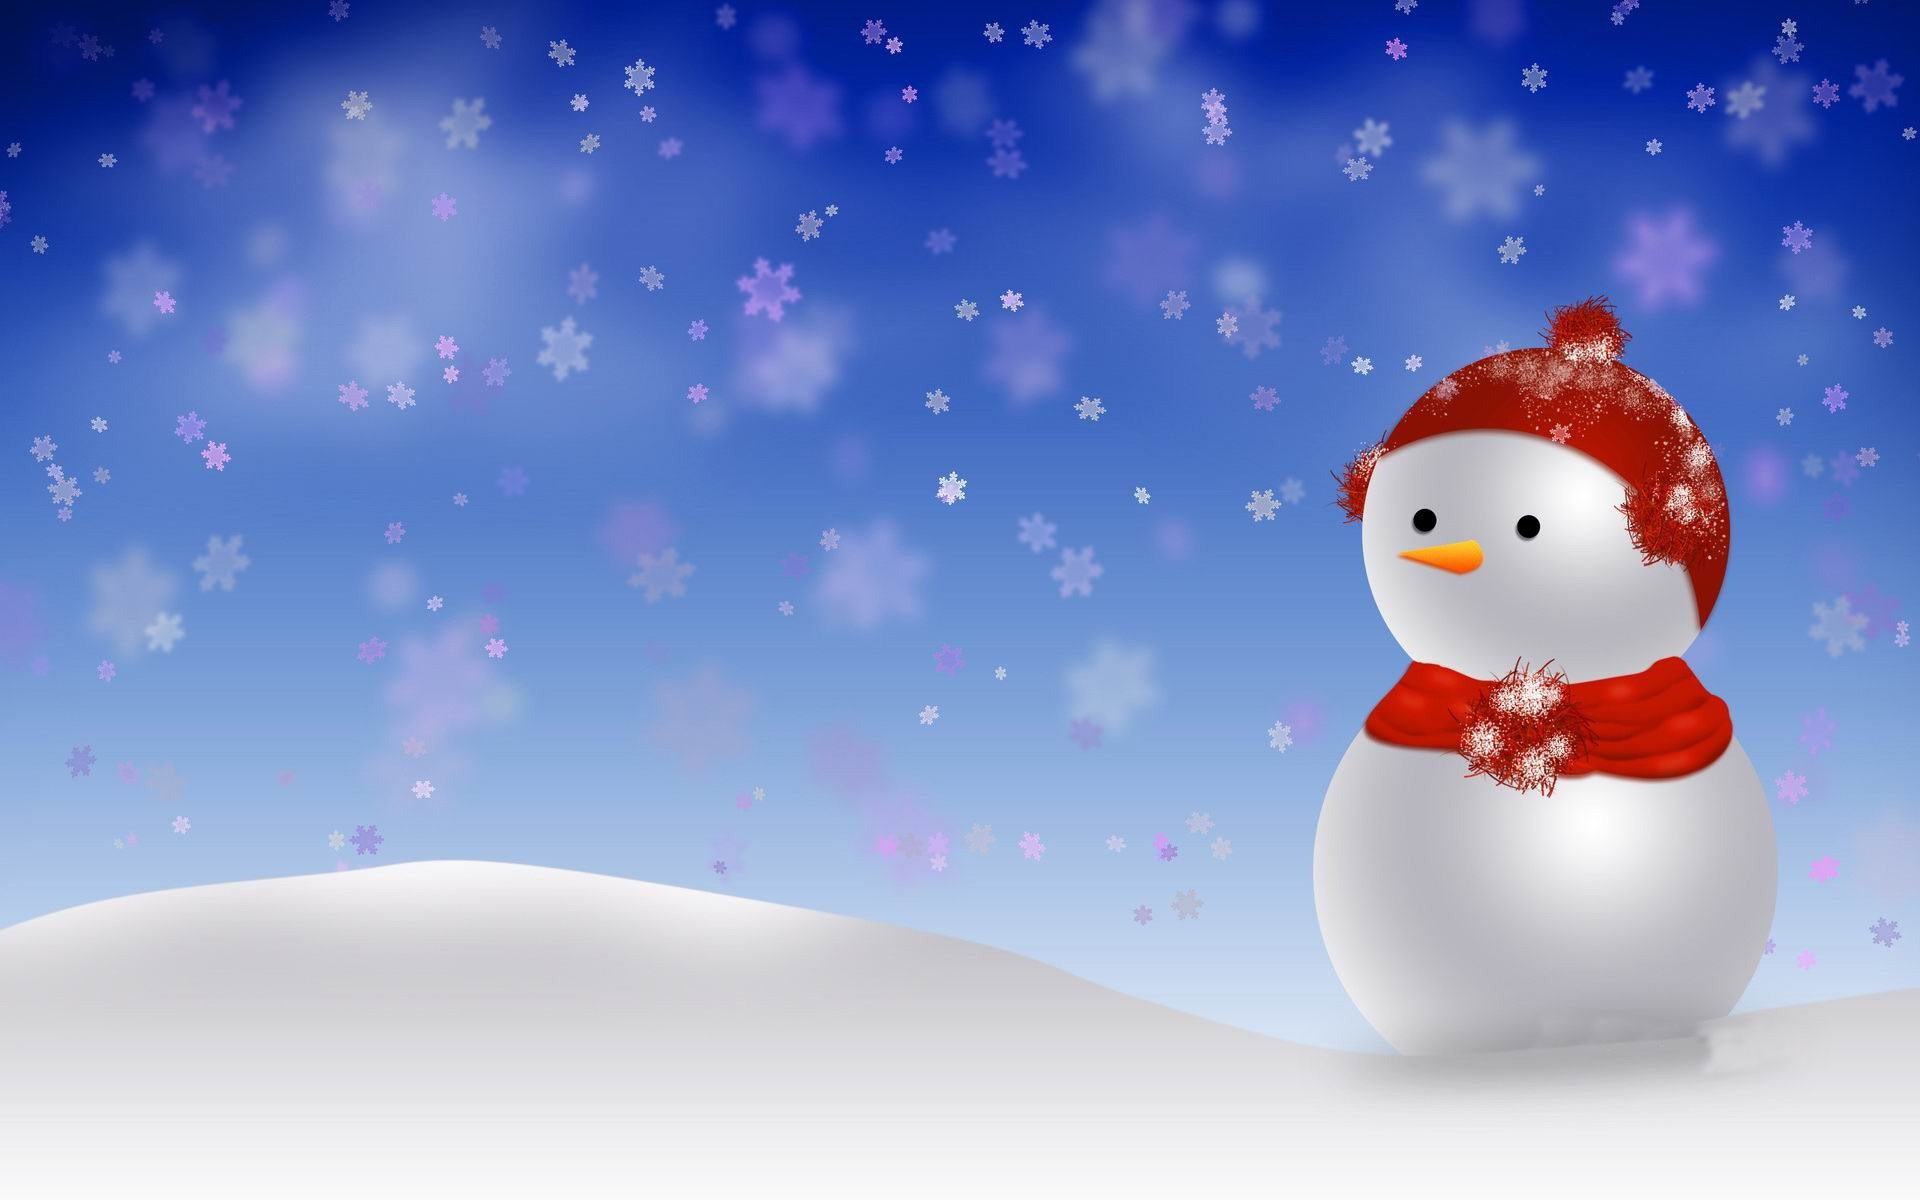 Aesthetic Cute Snowman Christmas HD Computer Wallpaper 10 View